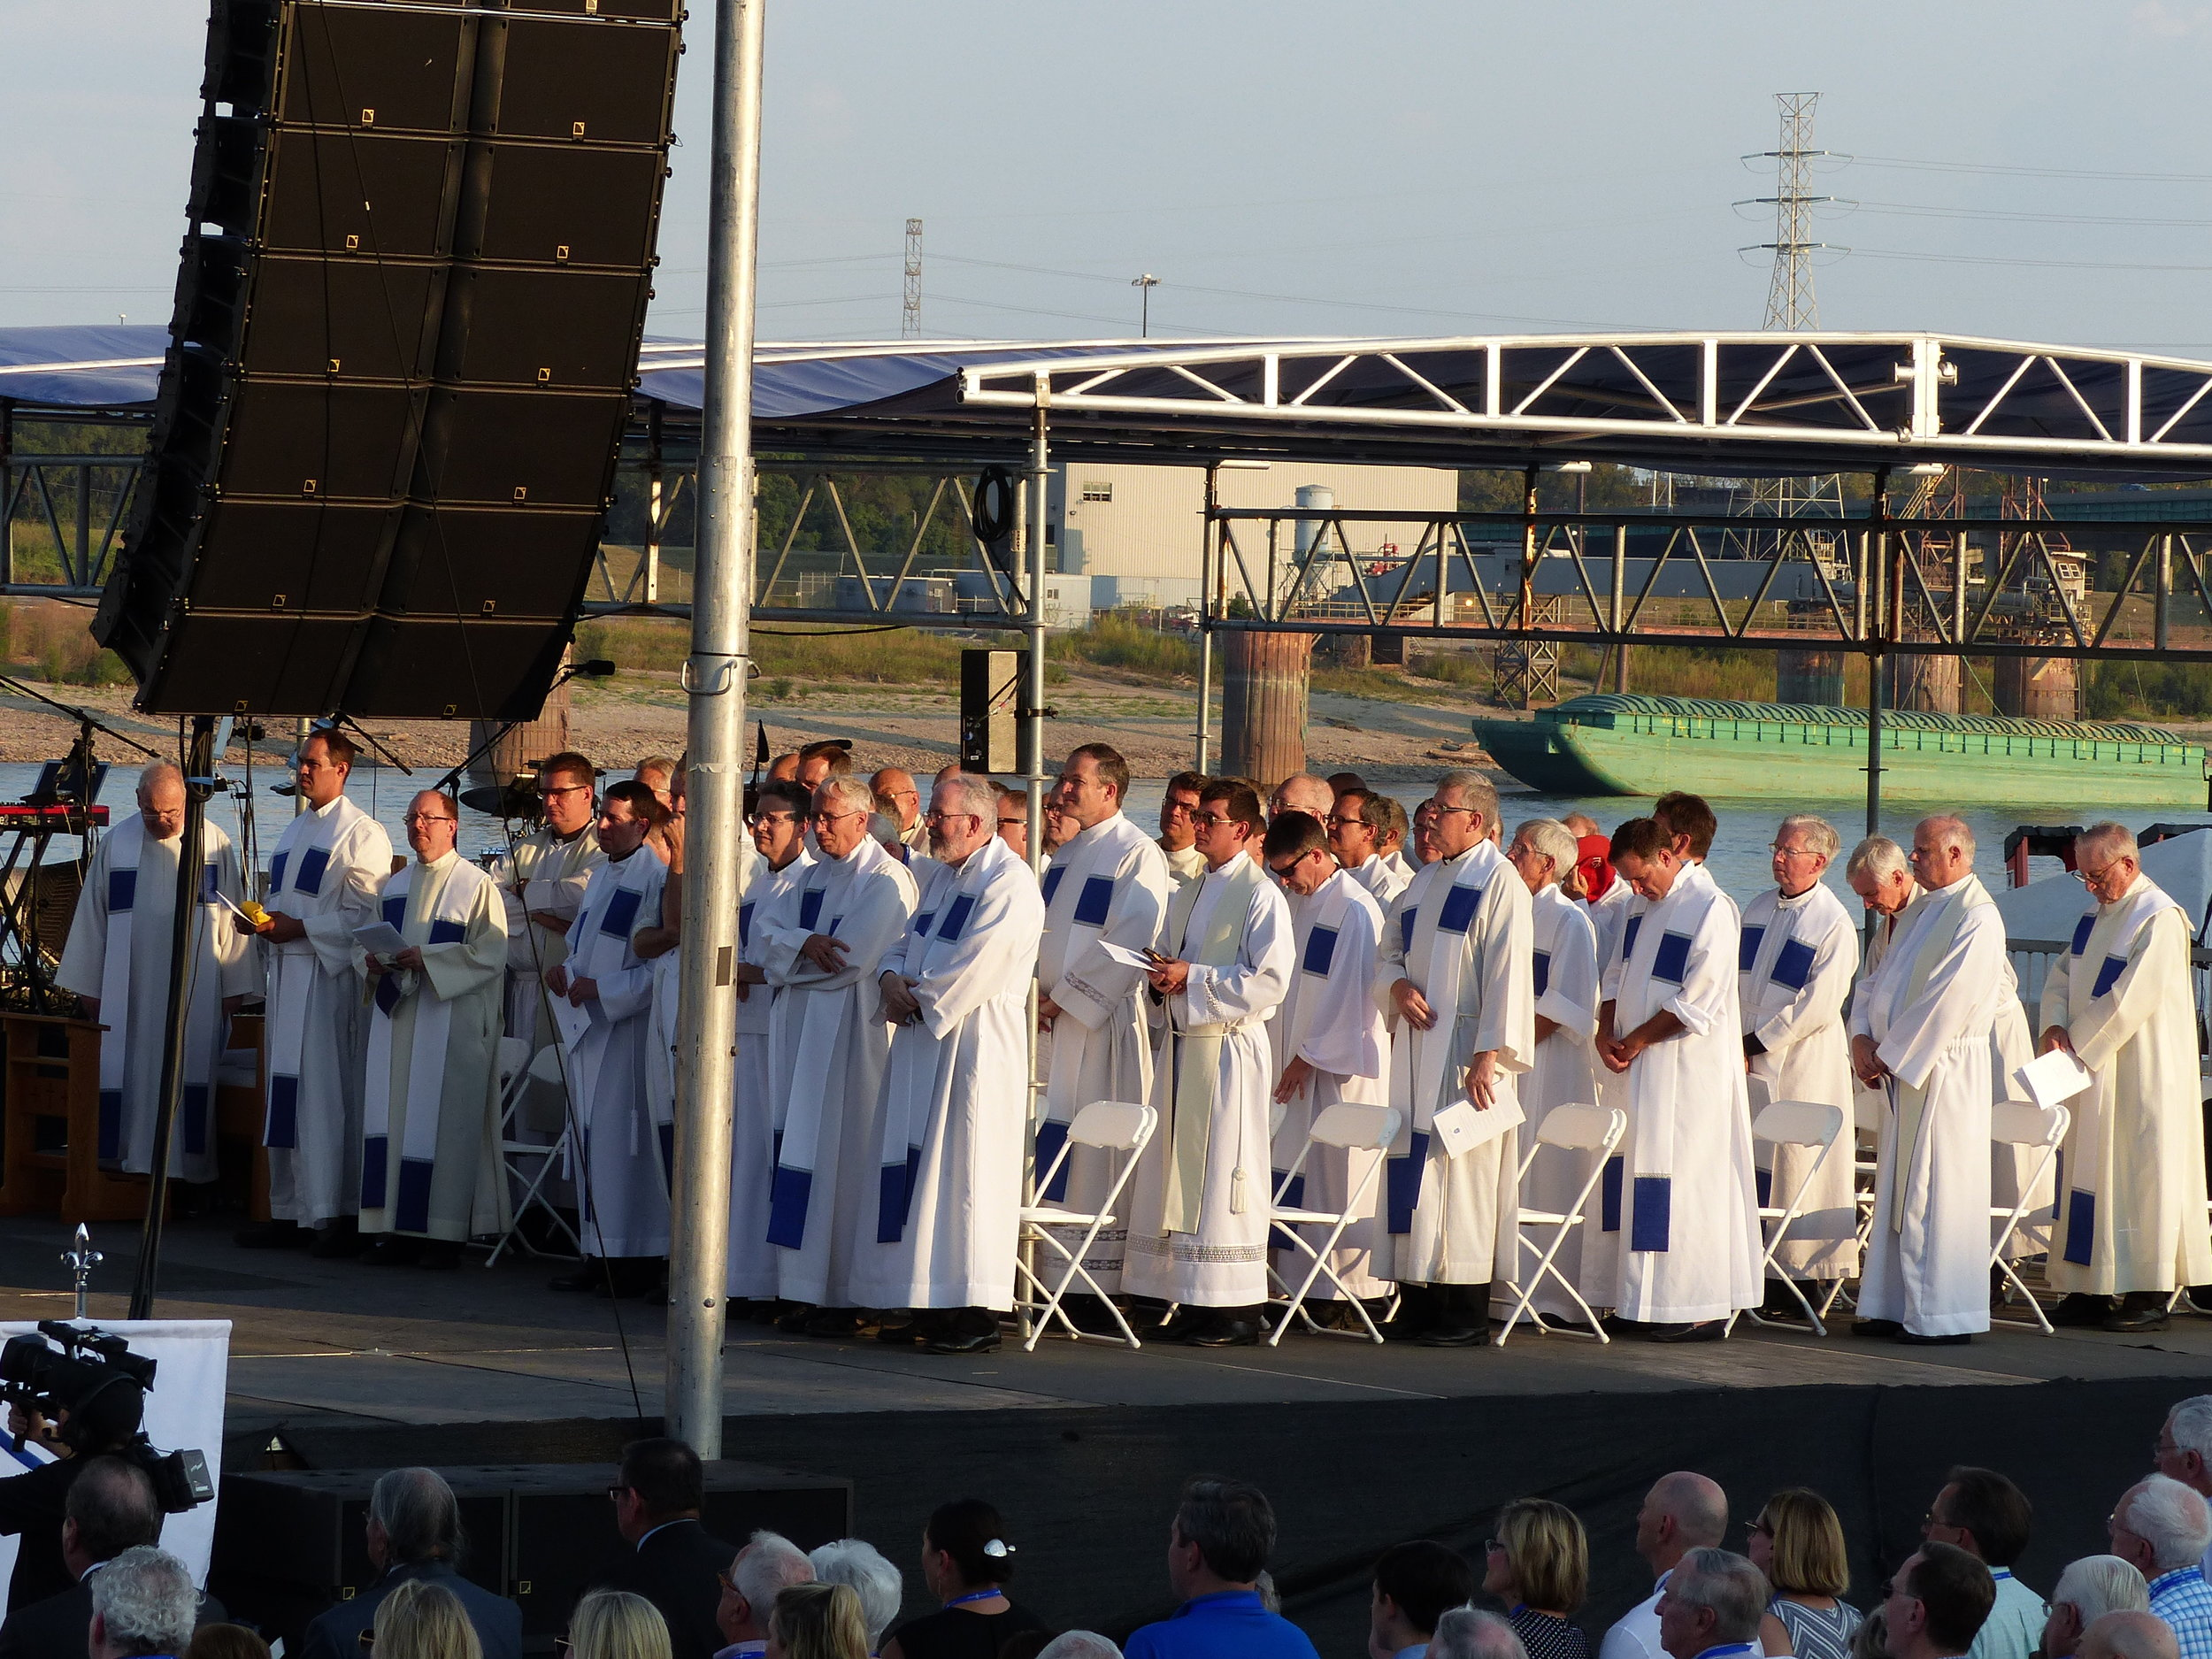 Rev. Michael J. Sheeran, S.J. (fourth from right) concelebrated the Saint Louis University Bicentennial Mass in St. Louis, MO on September 23, 2017 (photo by USA Central and Southern Province)